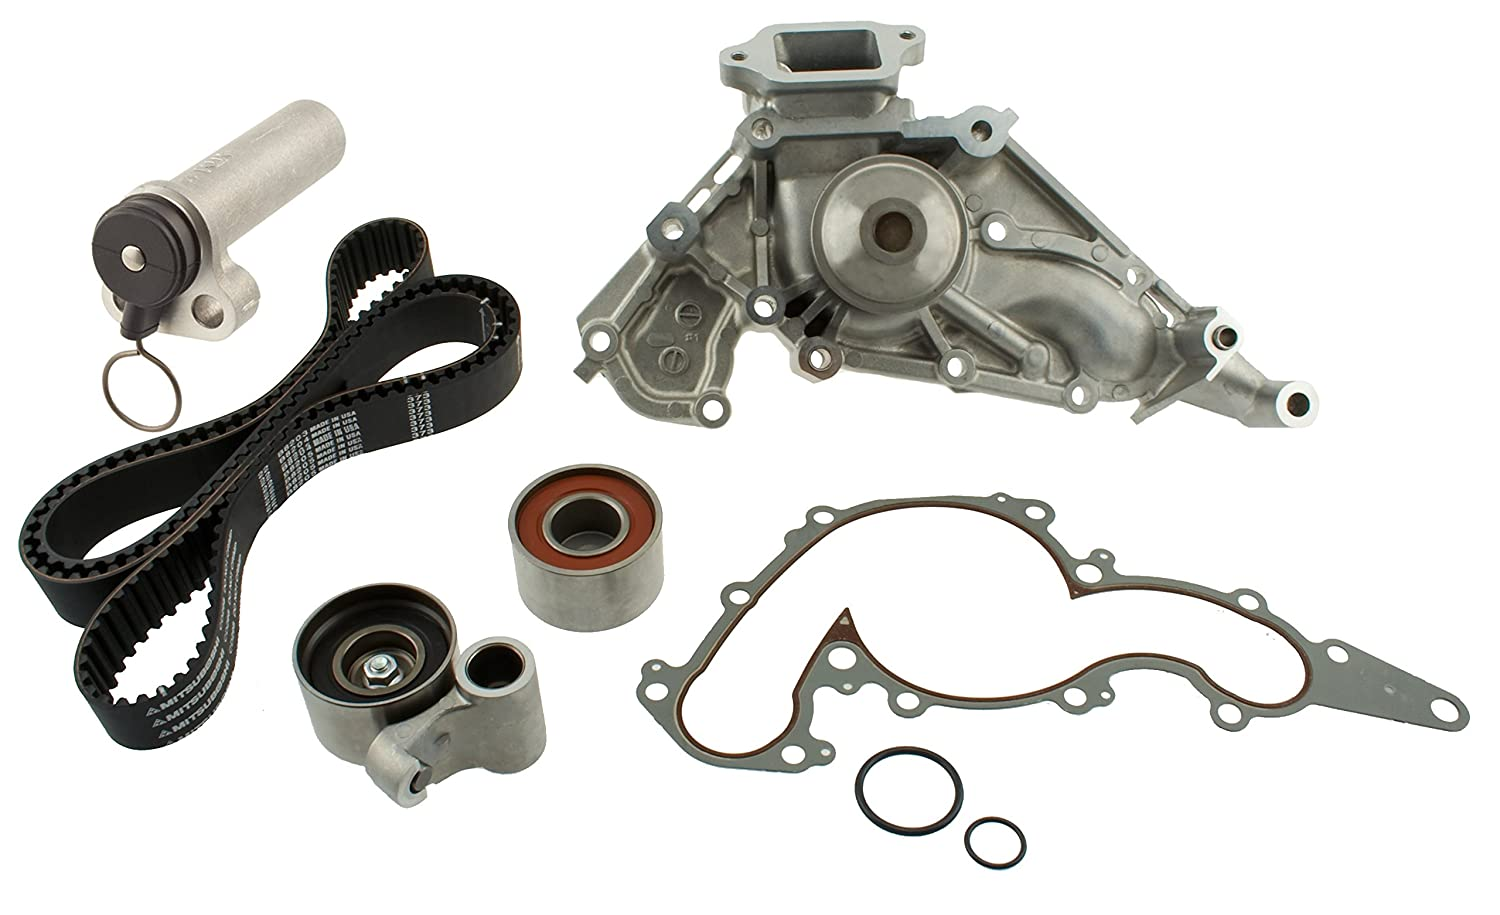 Aisin Tkt 021 Engine Timing Belt Kit With Water Pump Automotive Belts